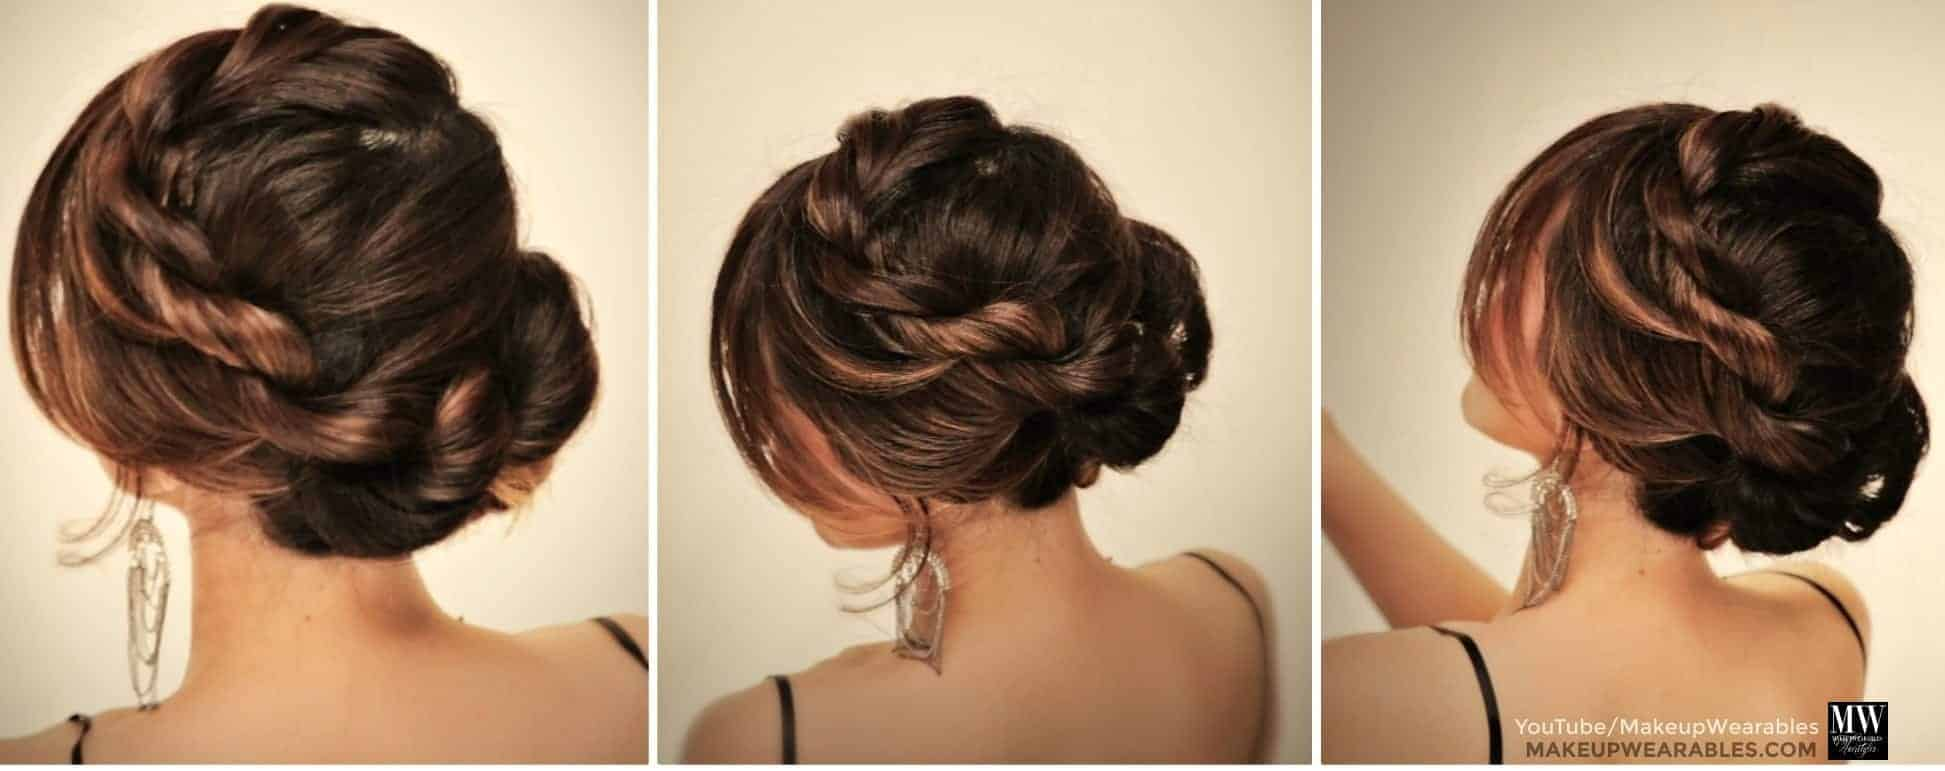 Elegant messy hairstyles for prom